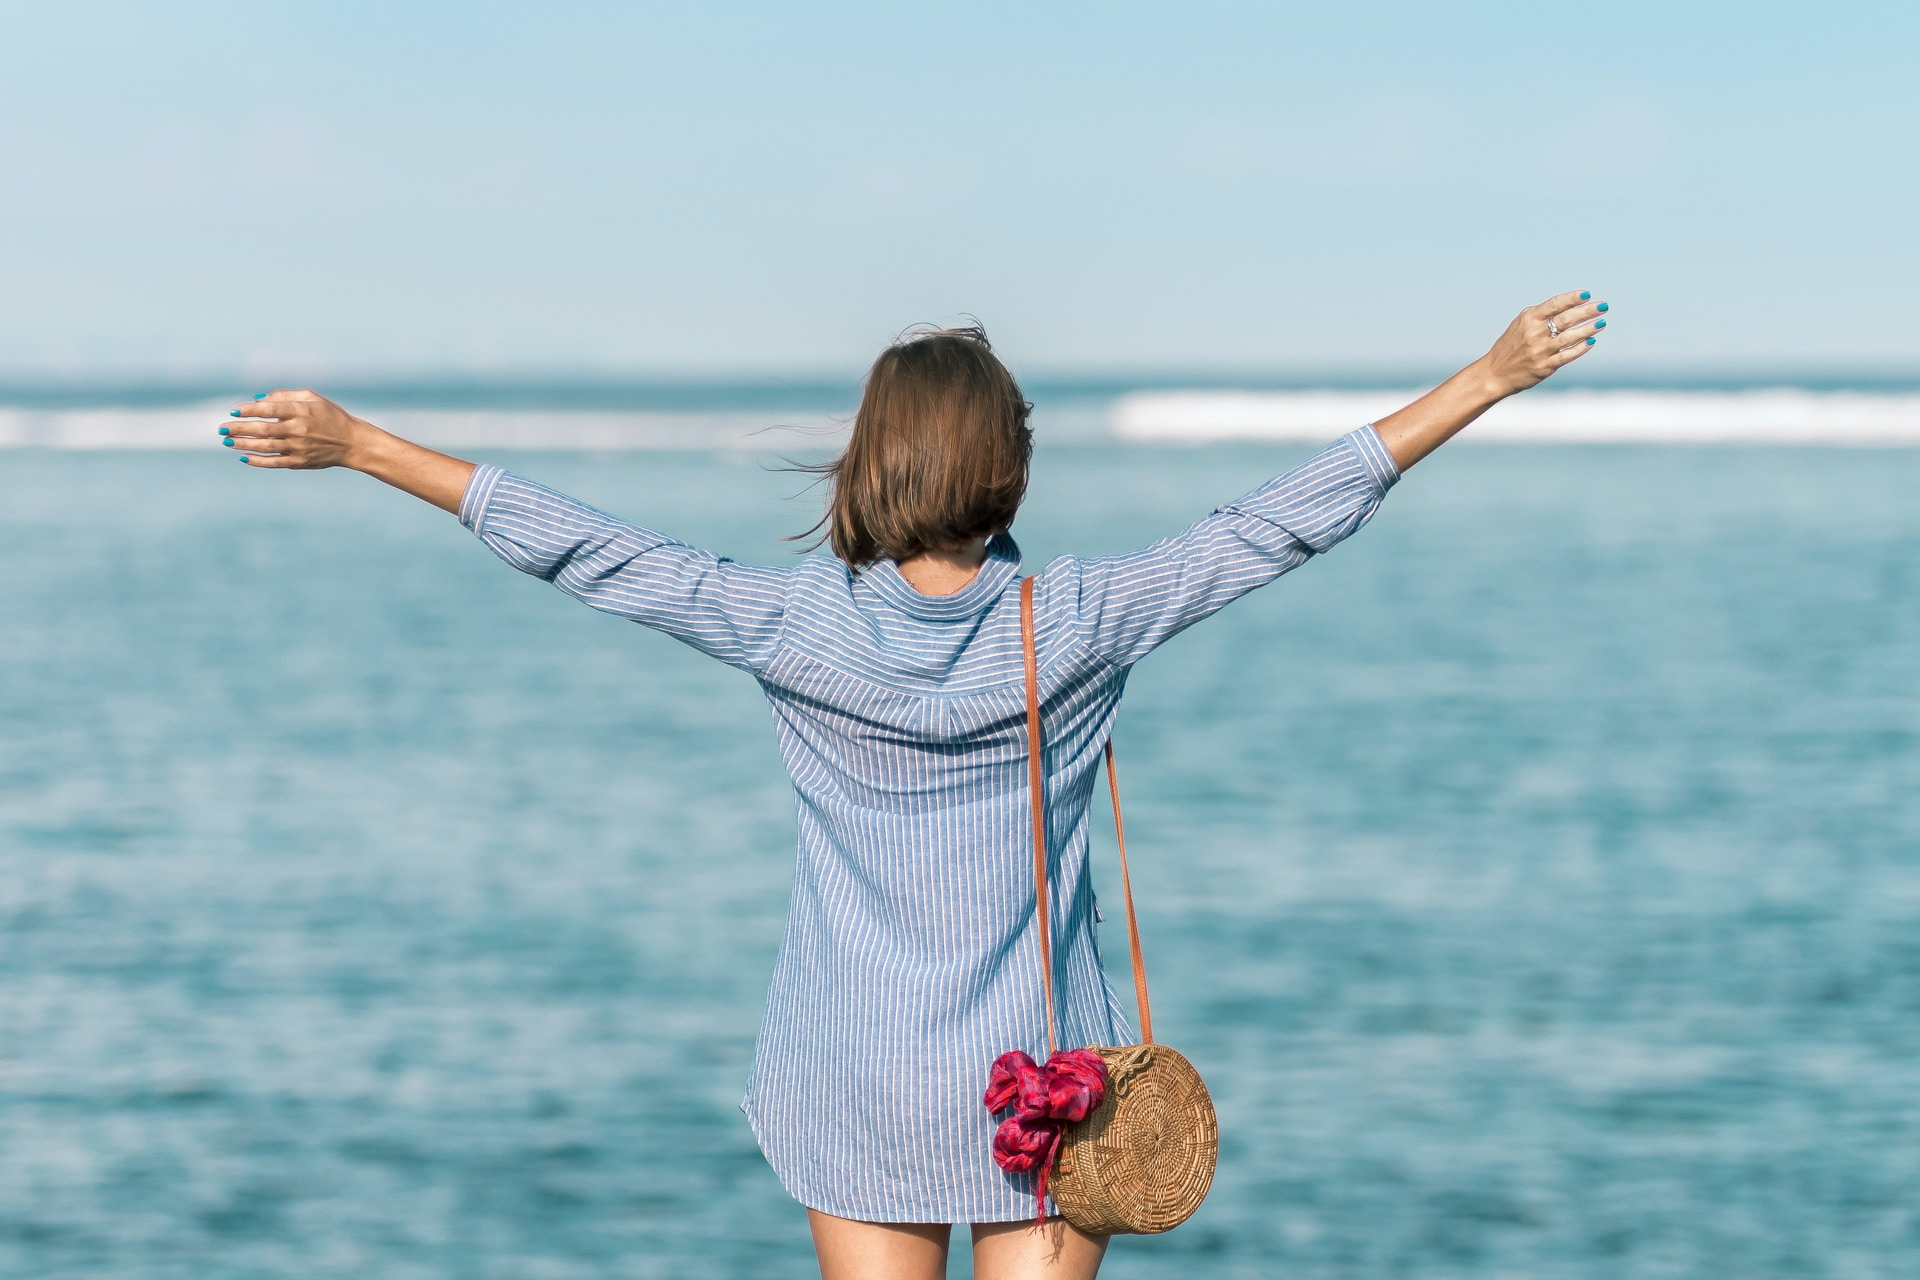 woman spreading hands standing near body of water